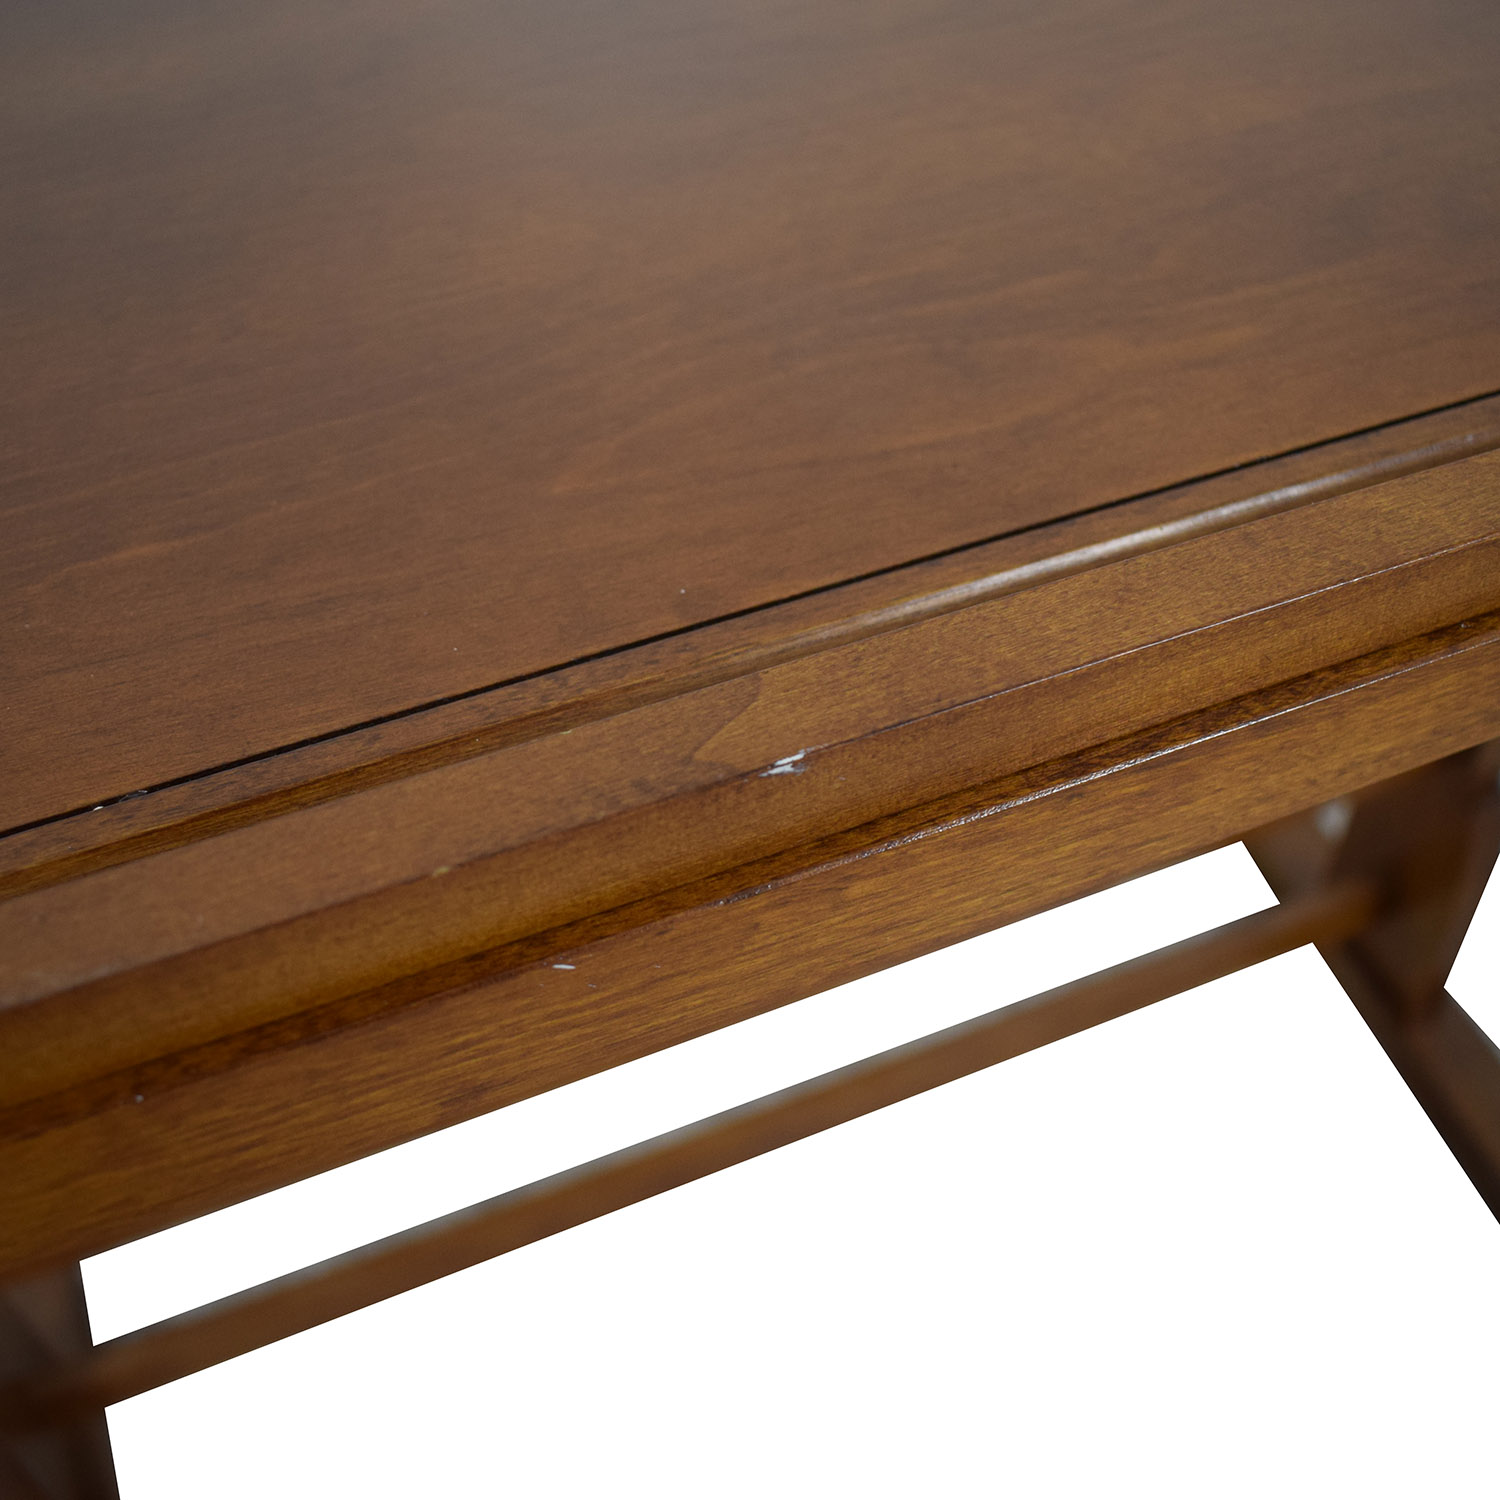 Wood Drafting Desk dimensions